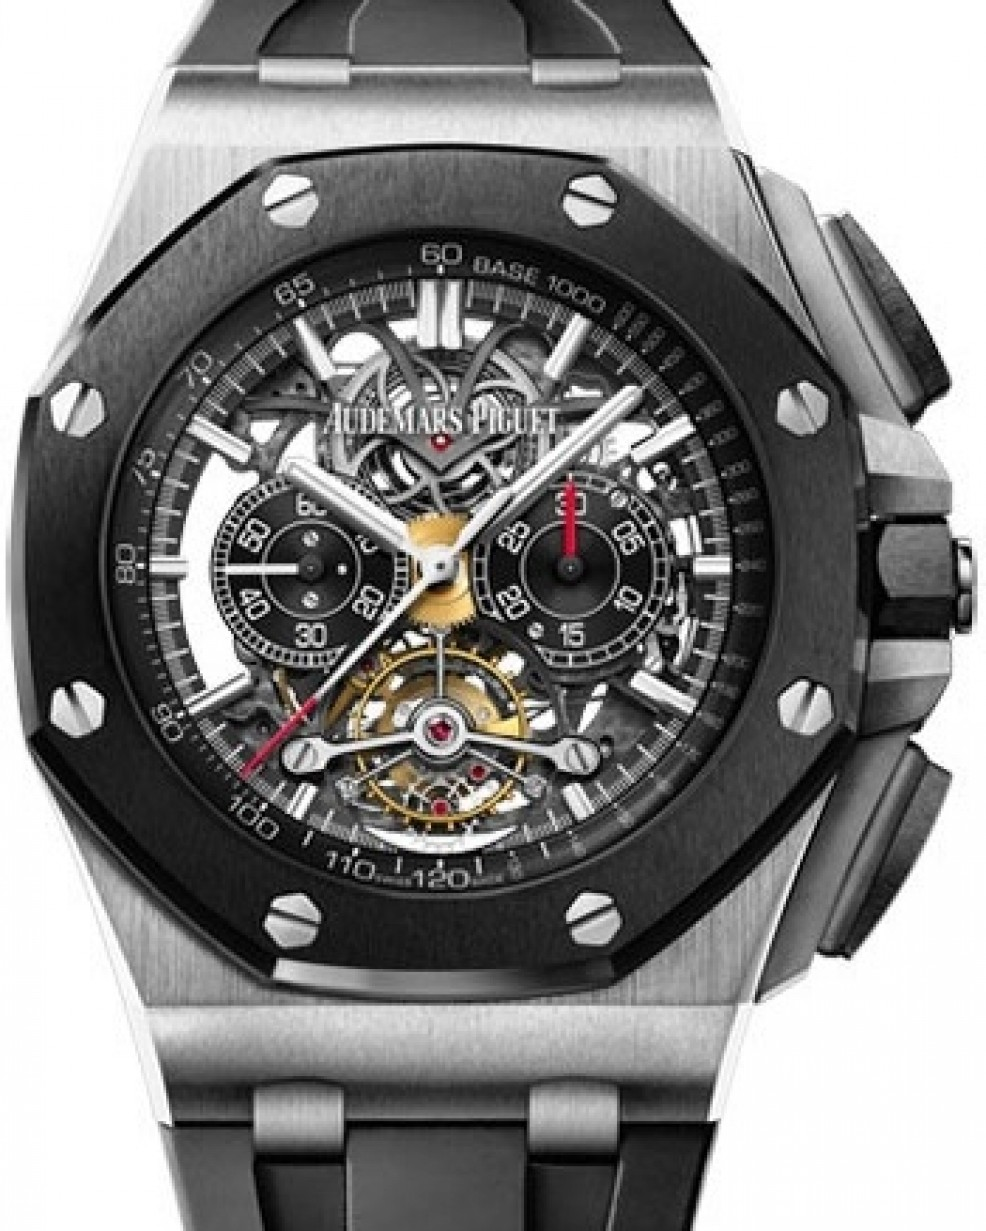 8eb89913f01 Audemars Piguet Royal Oak Offshore Tourbillon Chronograph Openworked  26348IO.OO.A002CA.01 Skeleton Index Ceramic Titanium Rubber 44mm Hand-Wound  - BRAND NEW